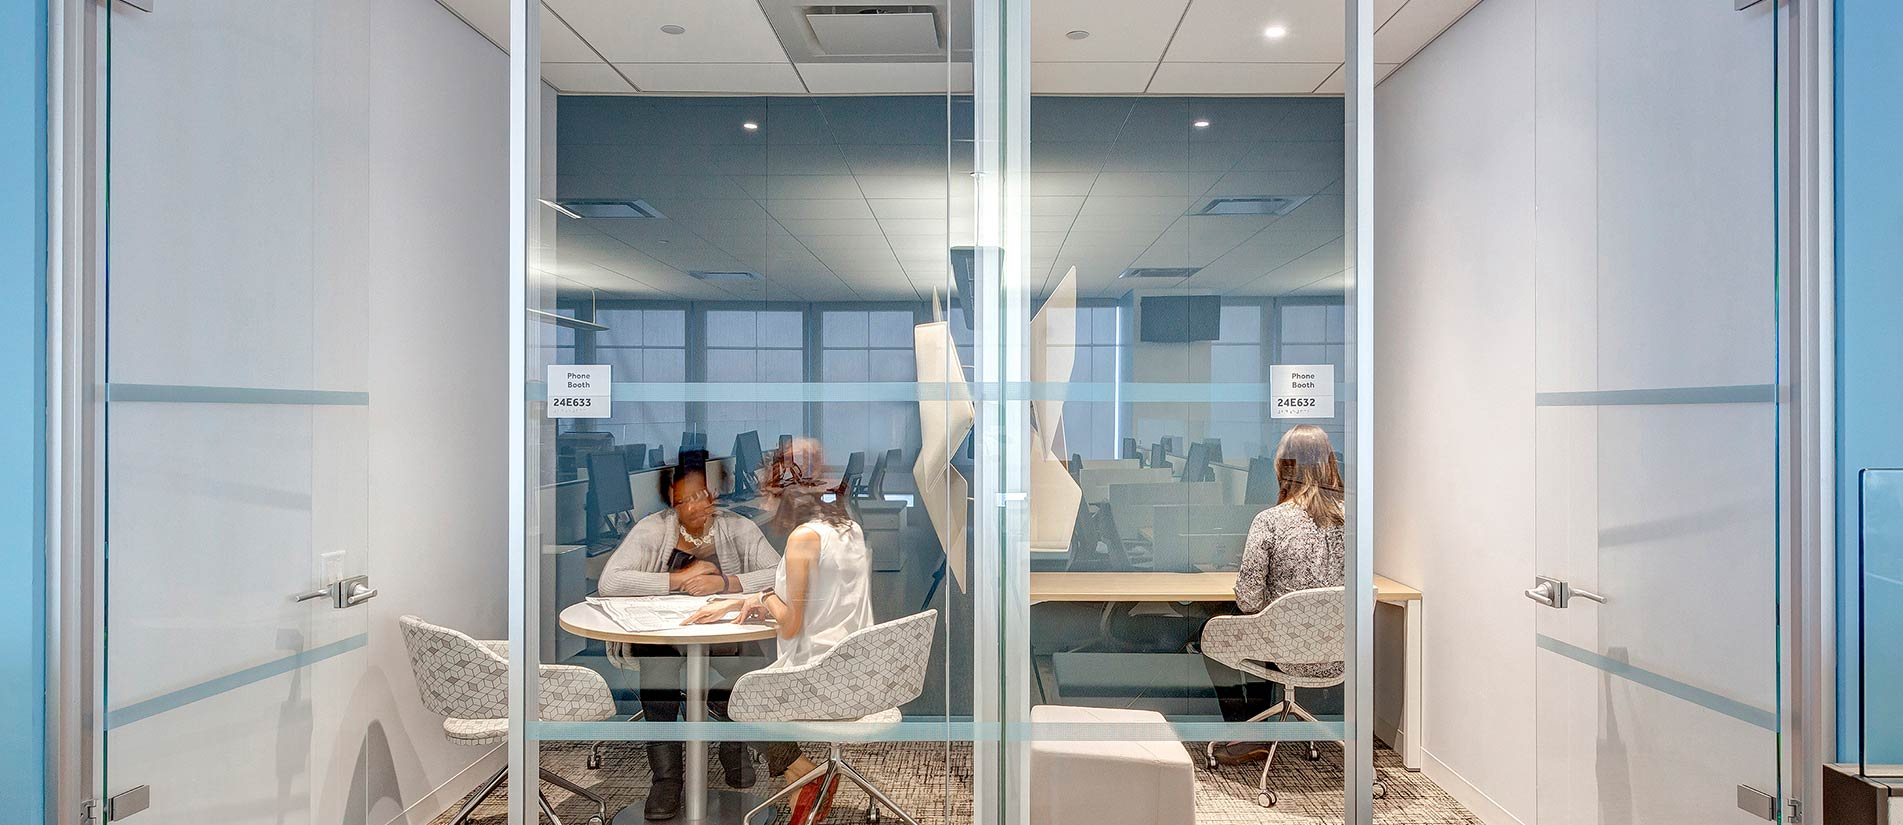 SILENCE partition walls and glass pane vertical surfaces creating a divider between three employees